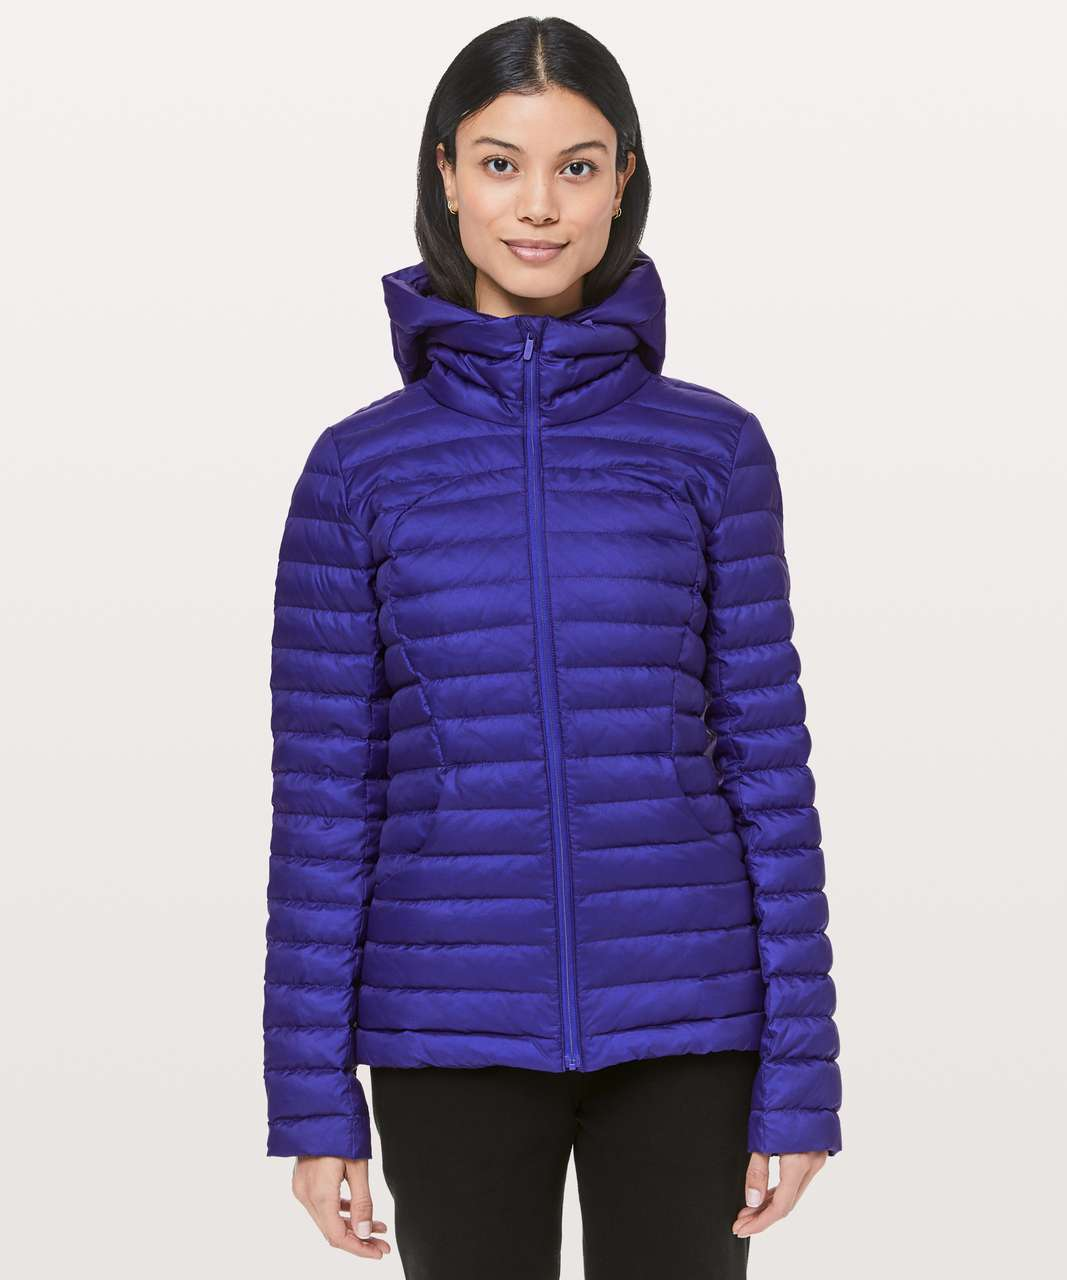 Lululemon Pack It Down Again Jacket - Lazurite